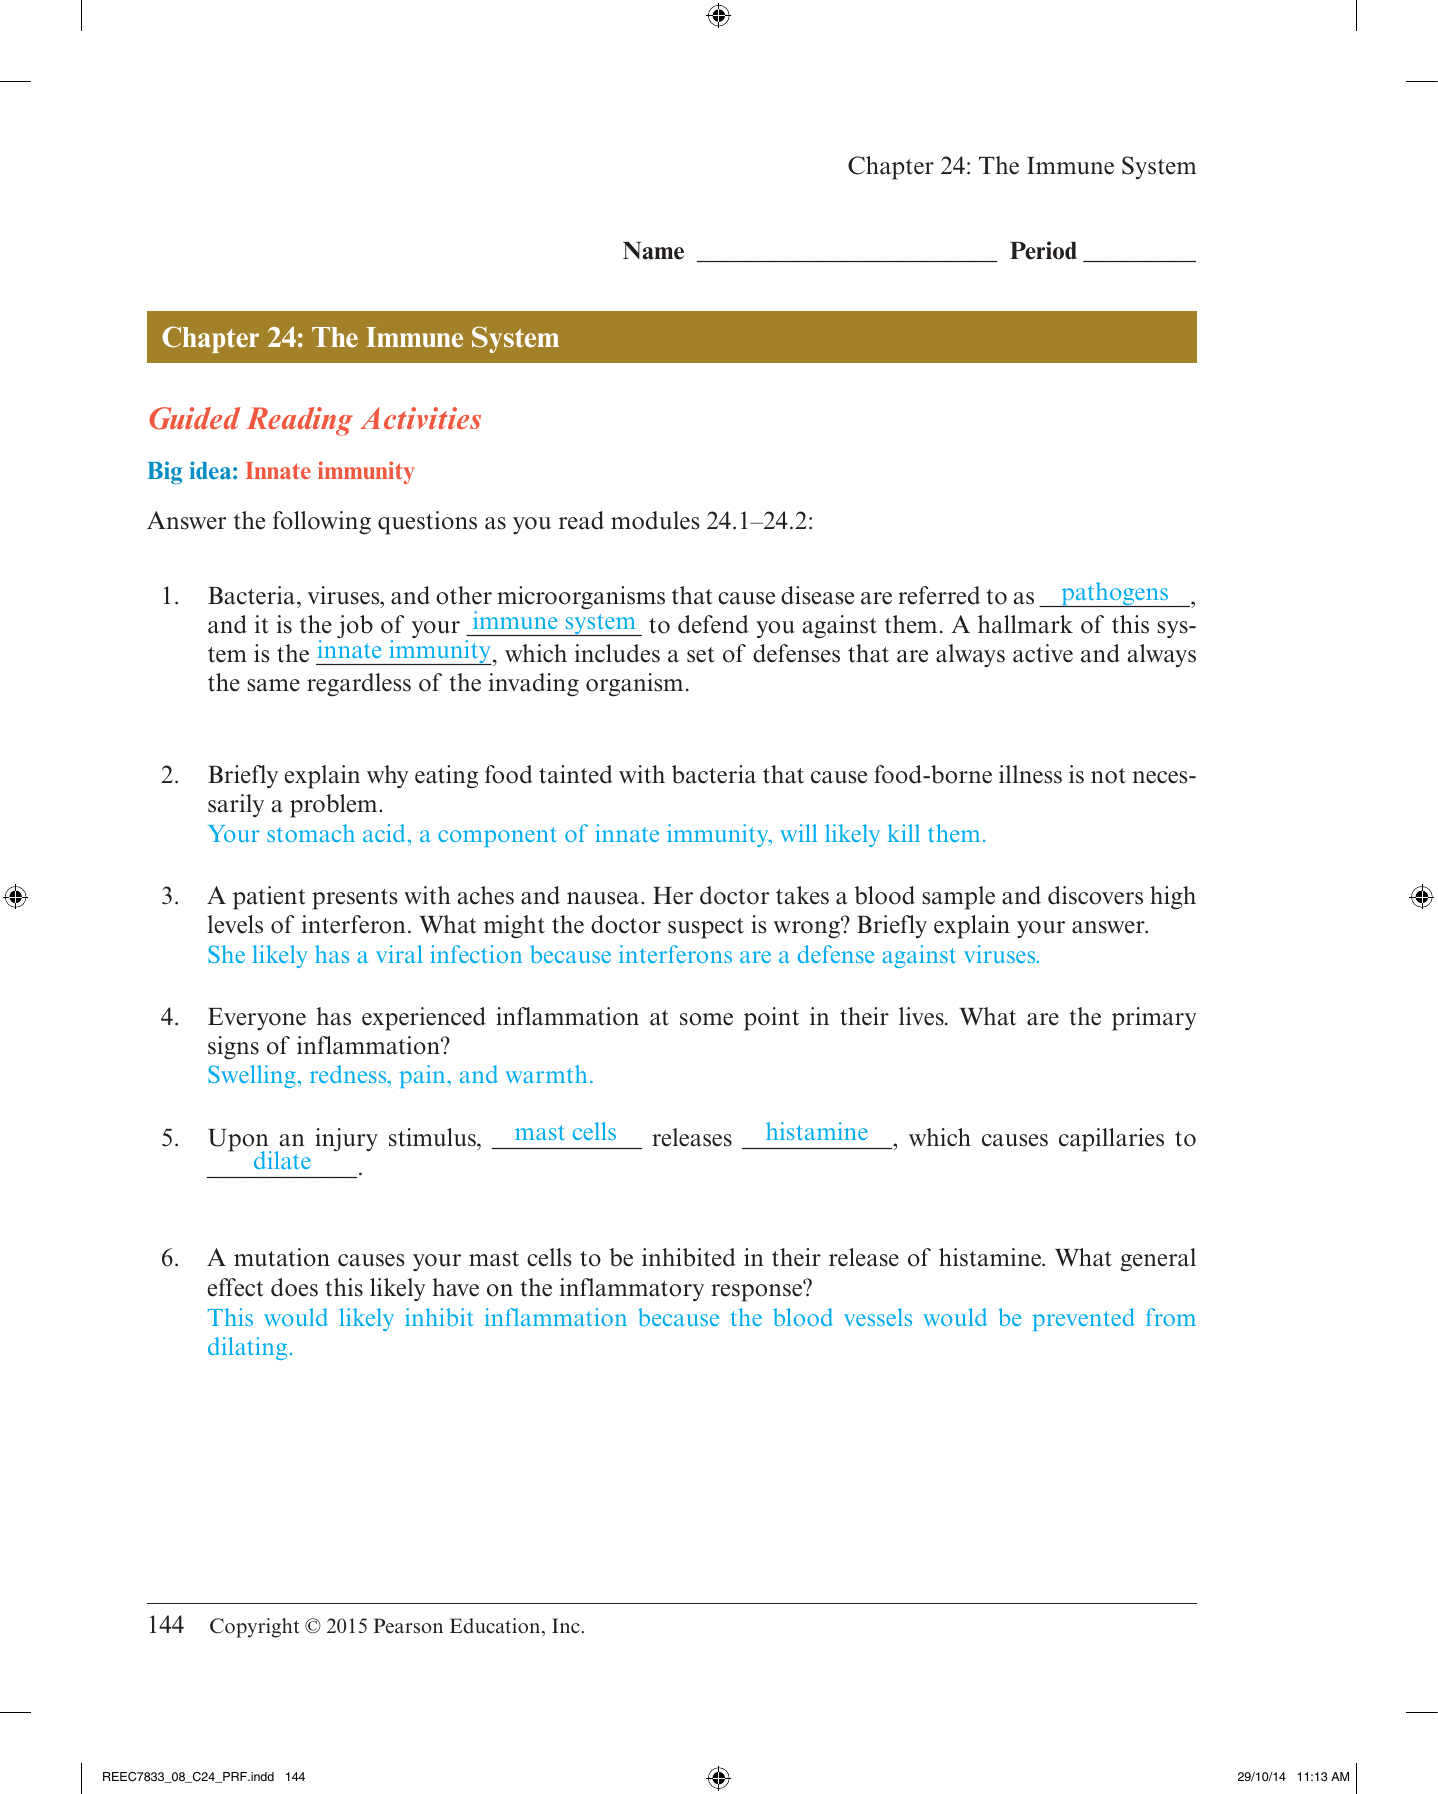 Chapter 24 The Immune System And Disease Worksheet Answer